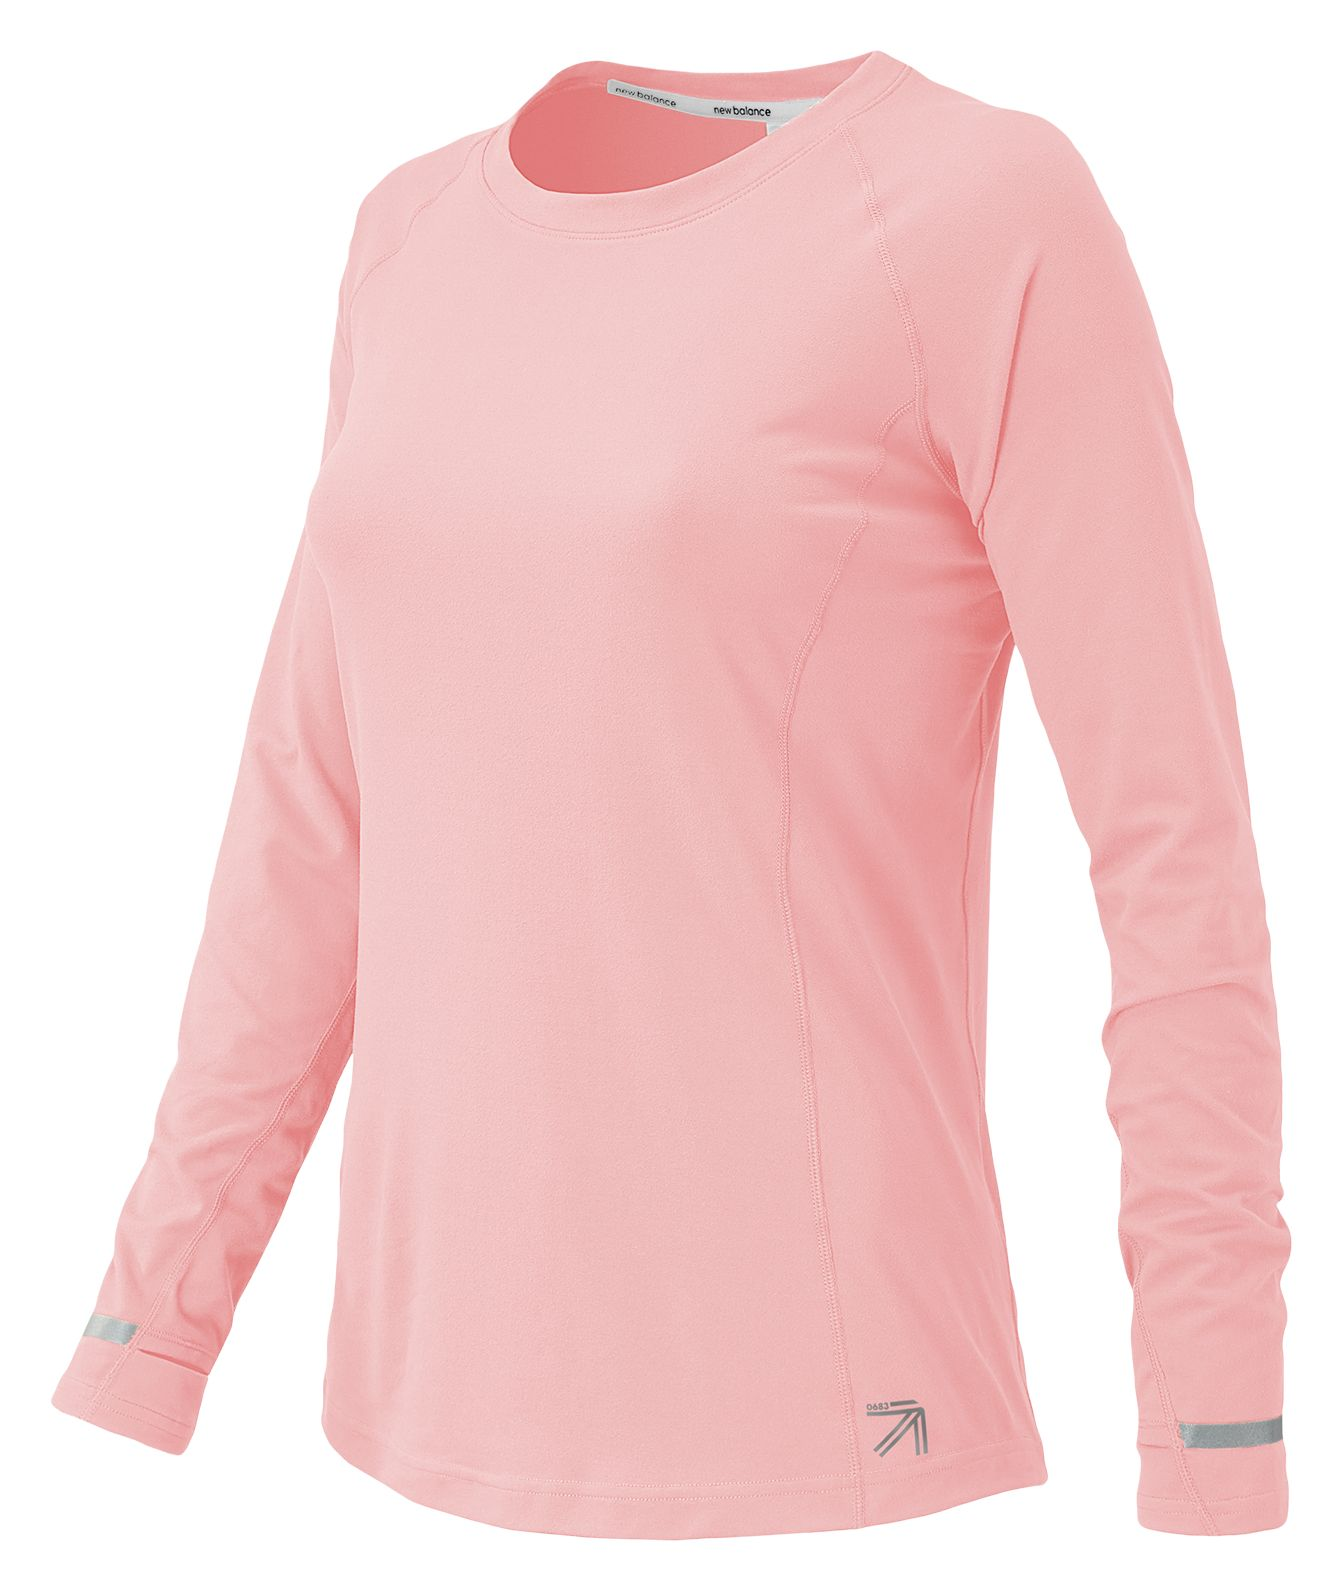 New Balance : J.Crew In Transit Long Sleeve : Women's J Crew : WT71243WPN